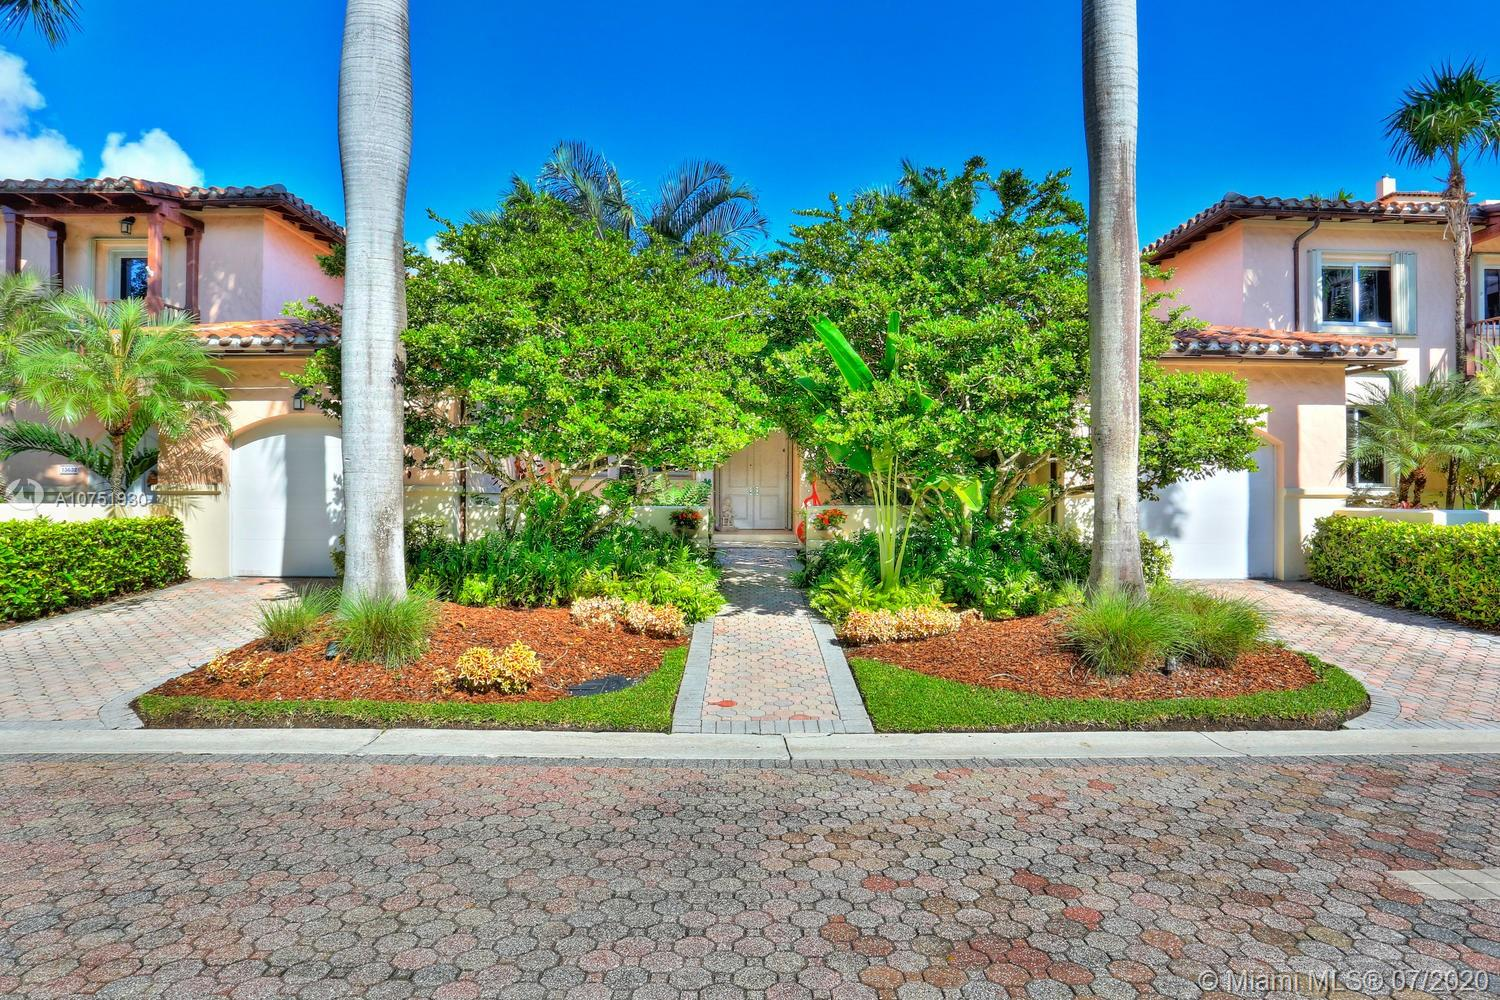 13634 Deering Bay Dr, Coral Gables, Florida 33158, 2 Bedrooms Bedrooms, ,4 BathroomsBathrooms,Residential,For Sale,13634 Deering Bay Dr,A10751930